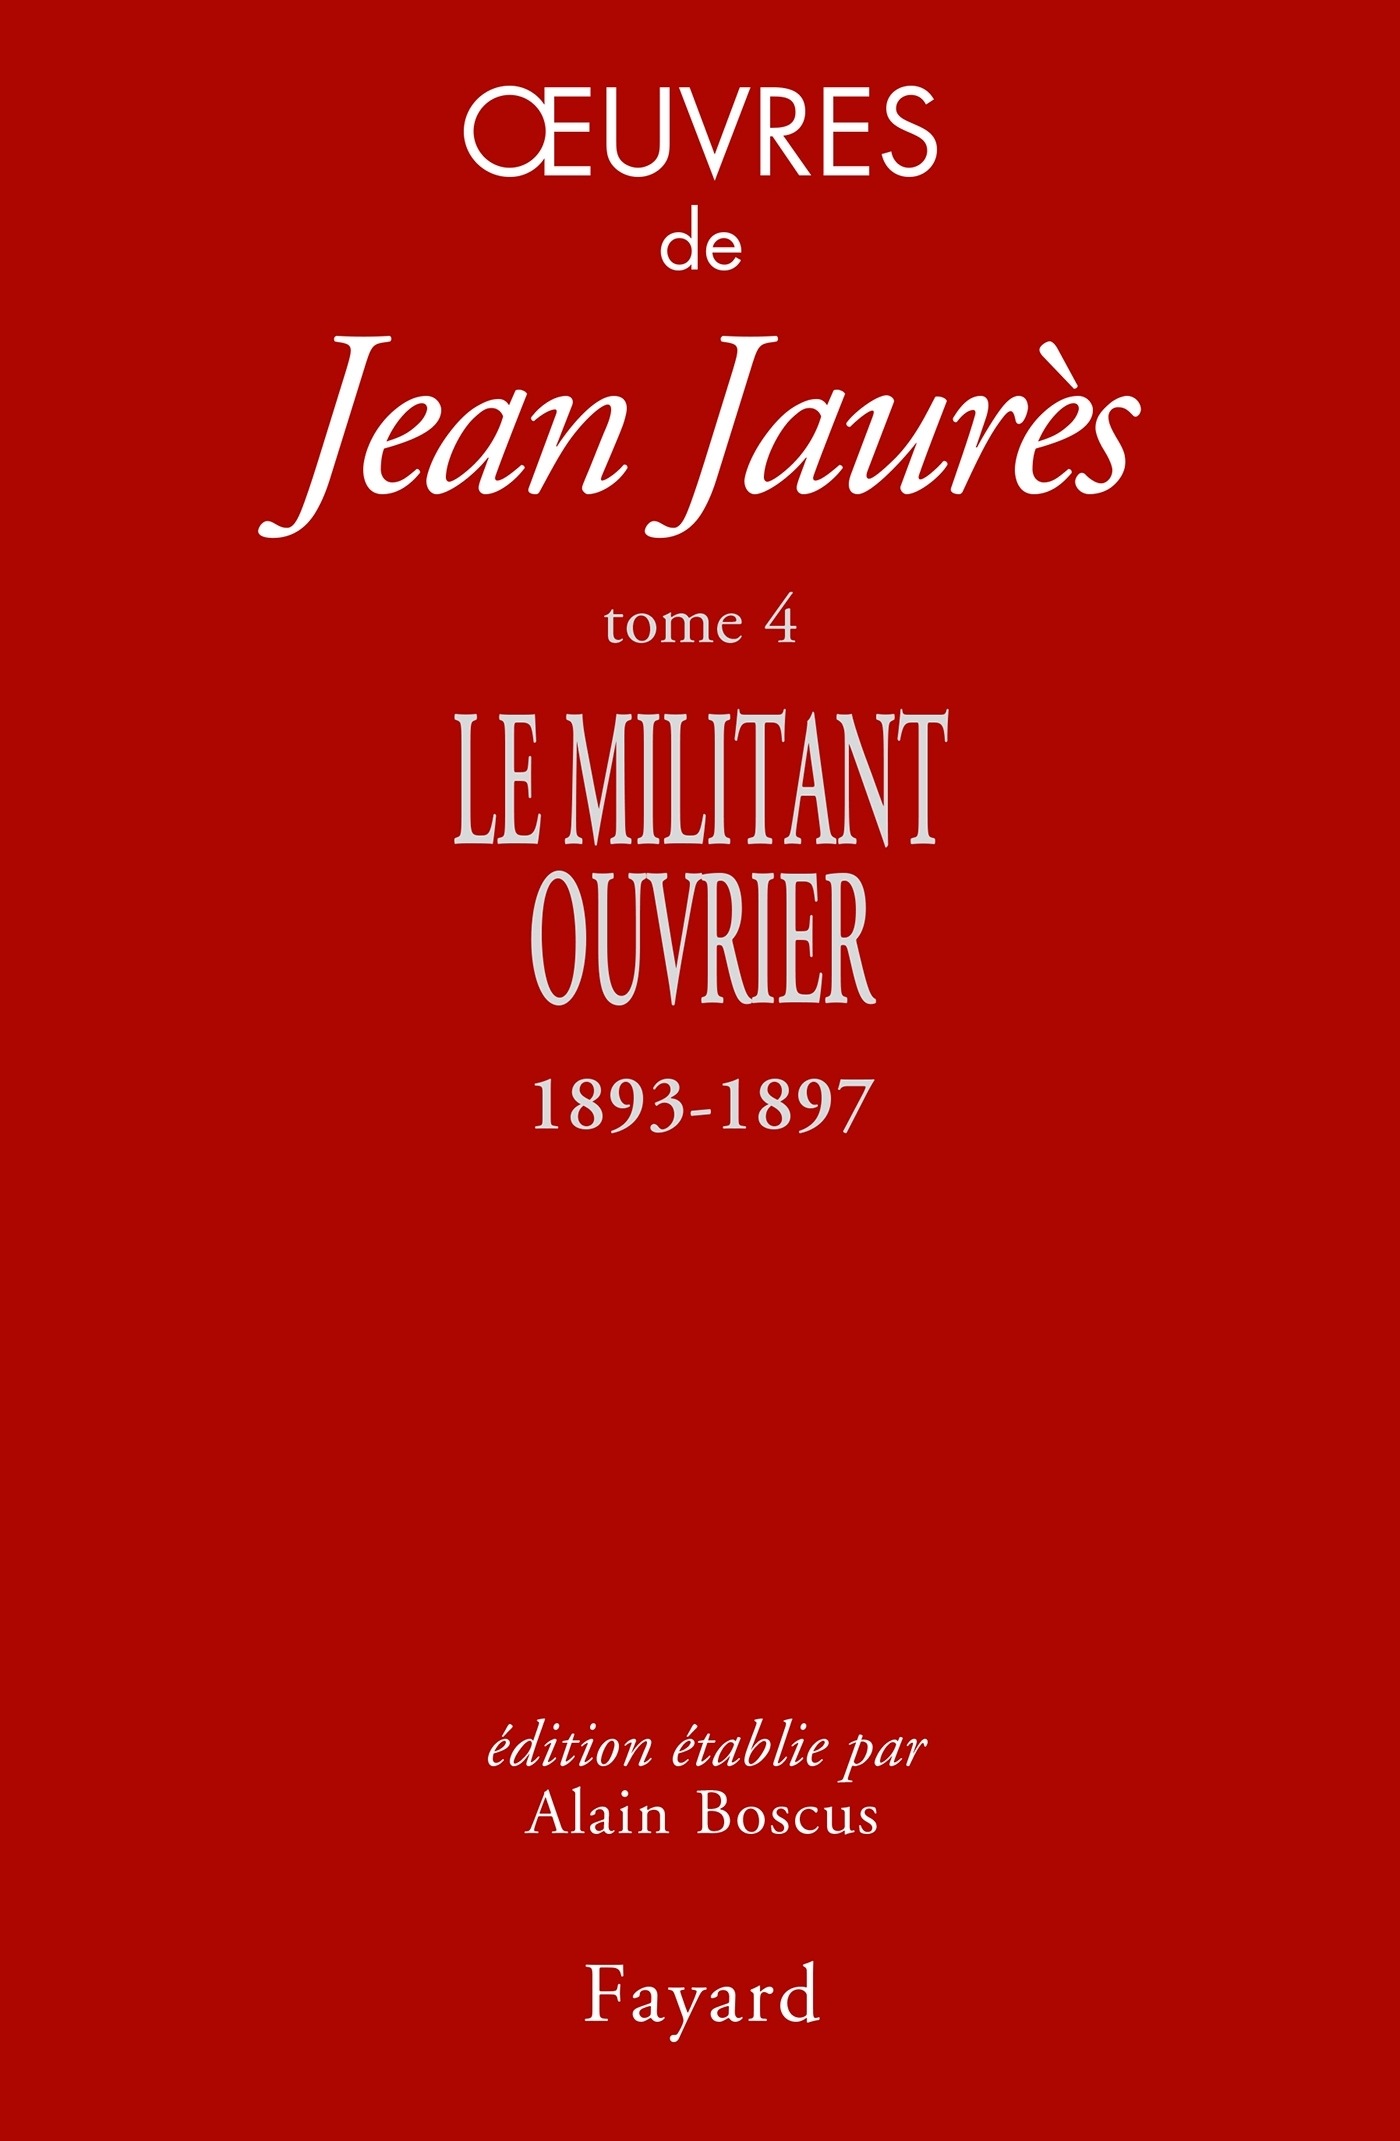 OEUVRES TOME 4 - LE MILITANT OUVRIER 1893-1897